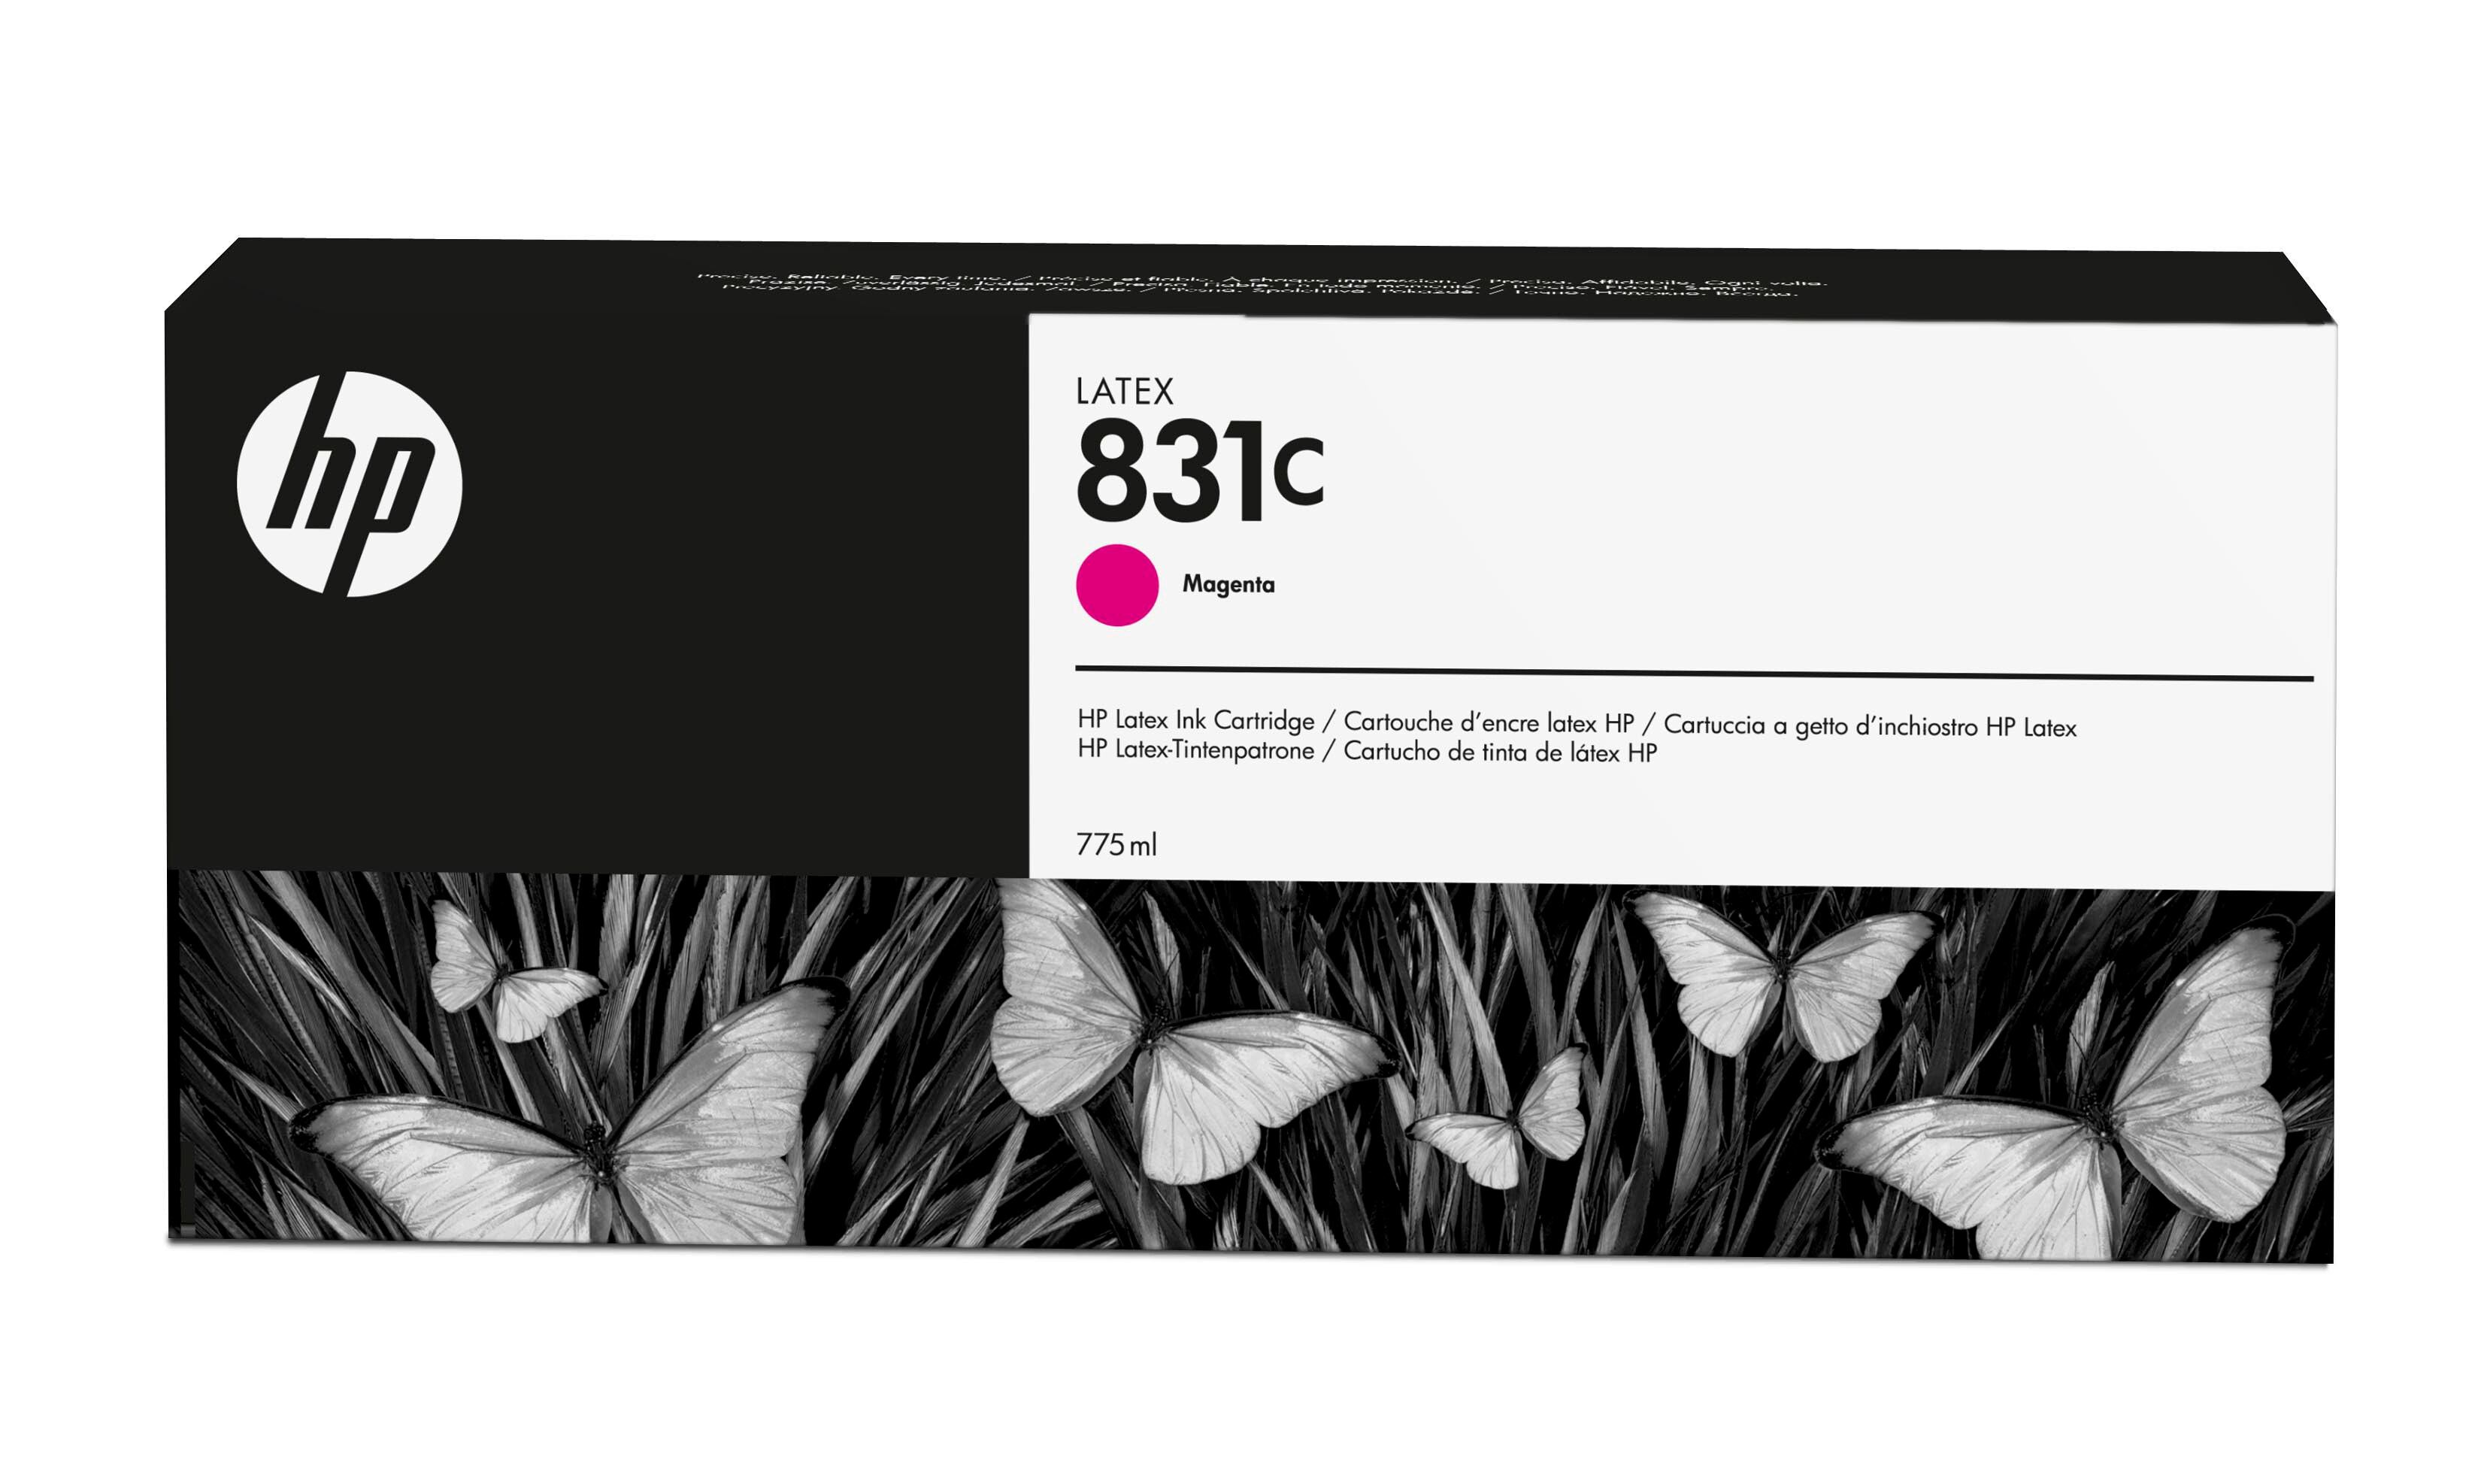 HP 831C 775-ml Magenta Latex Ink Cartridge CZ696A